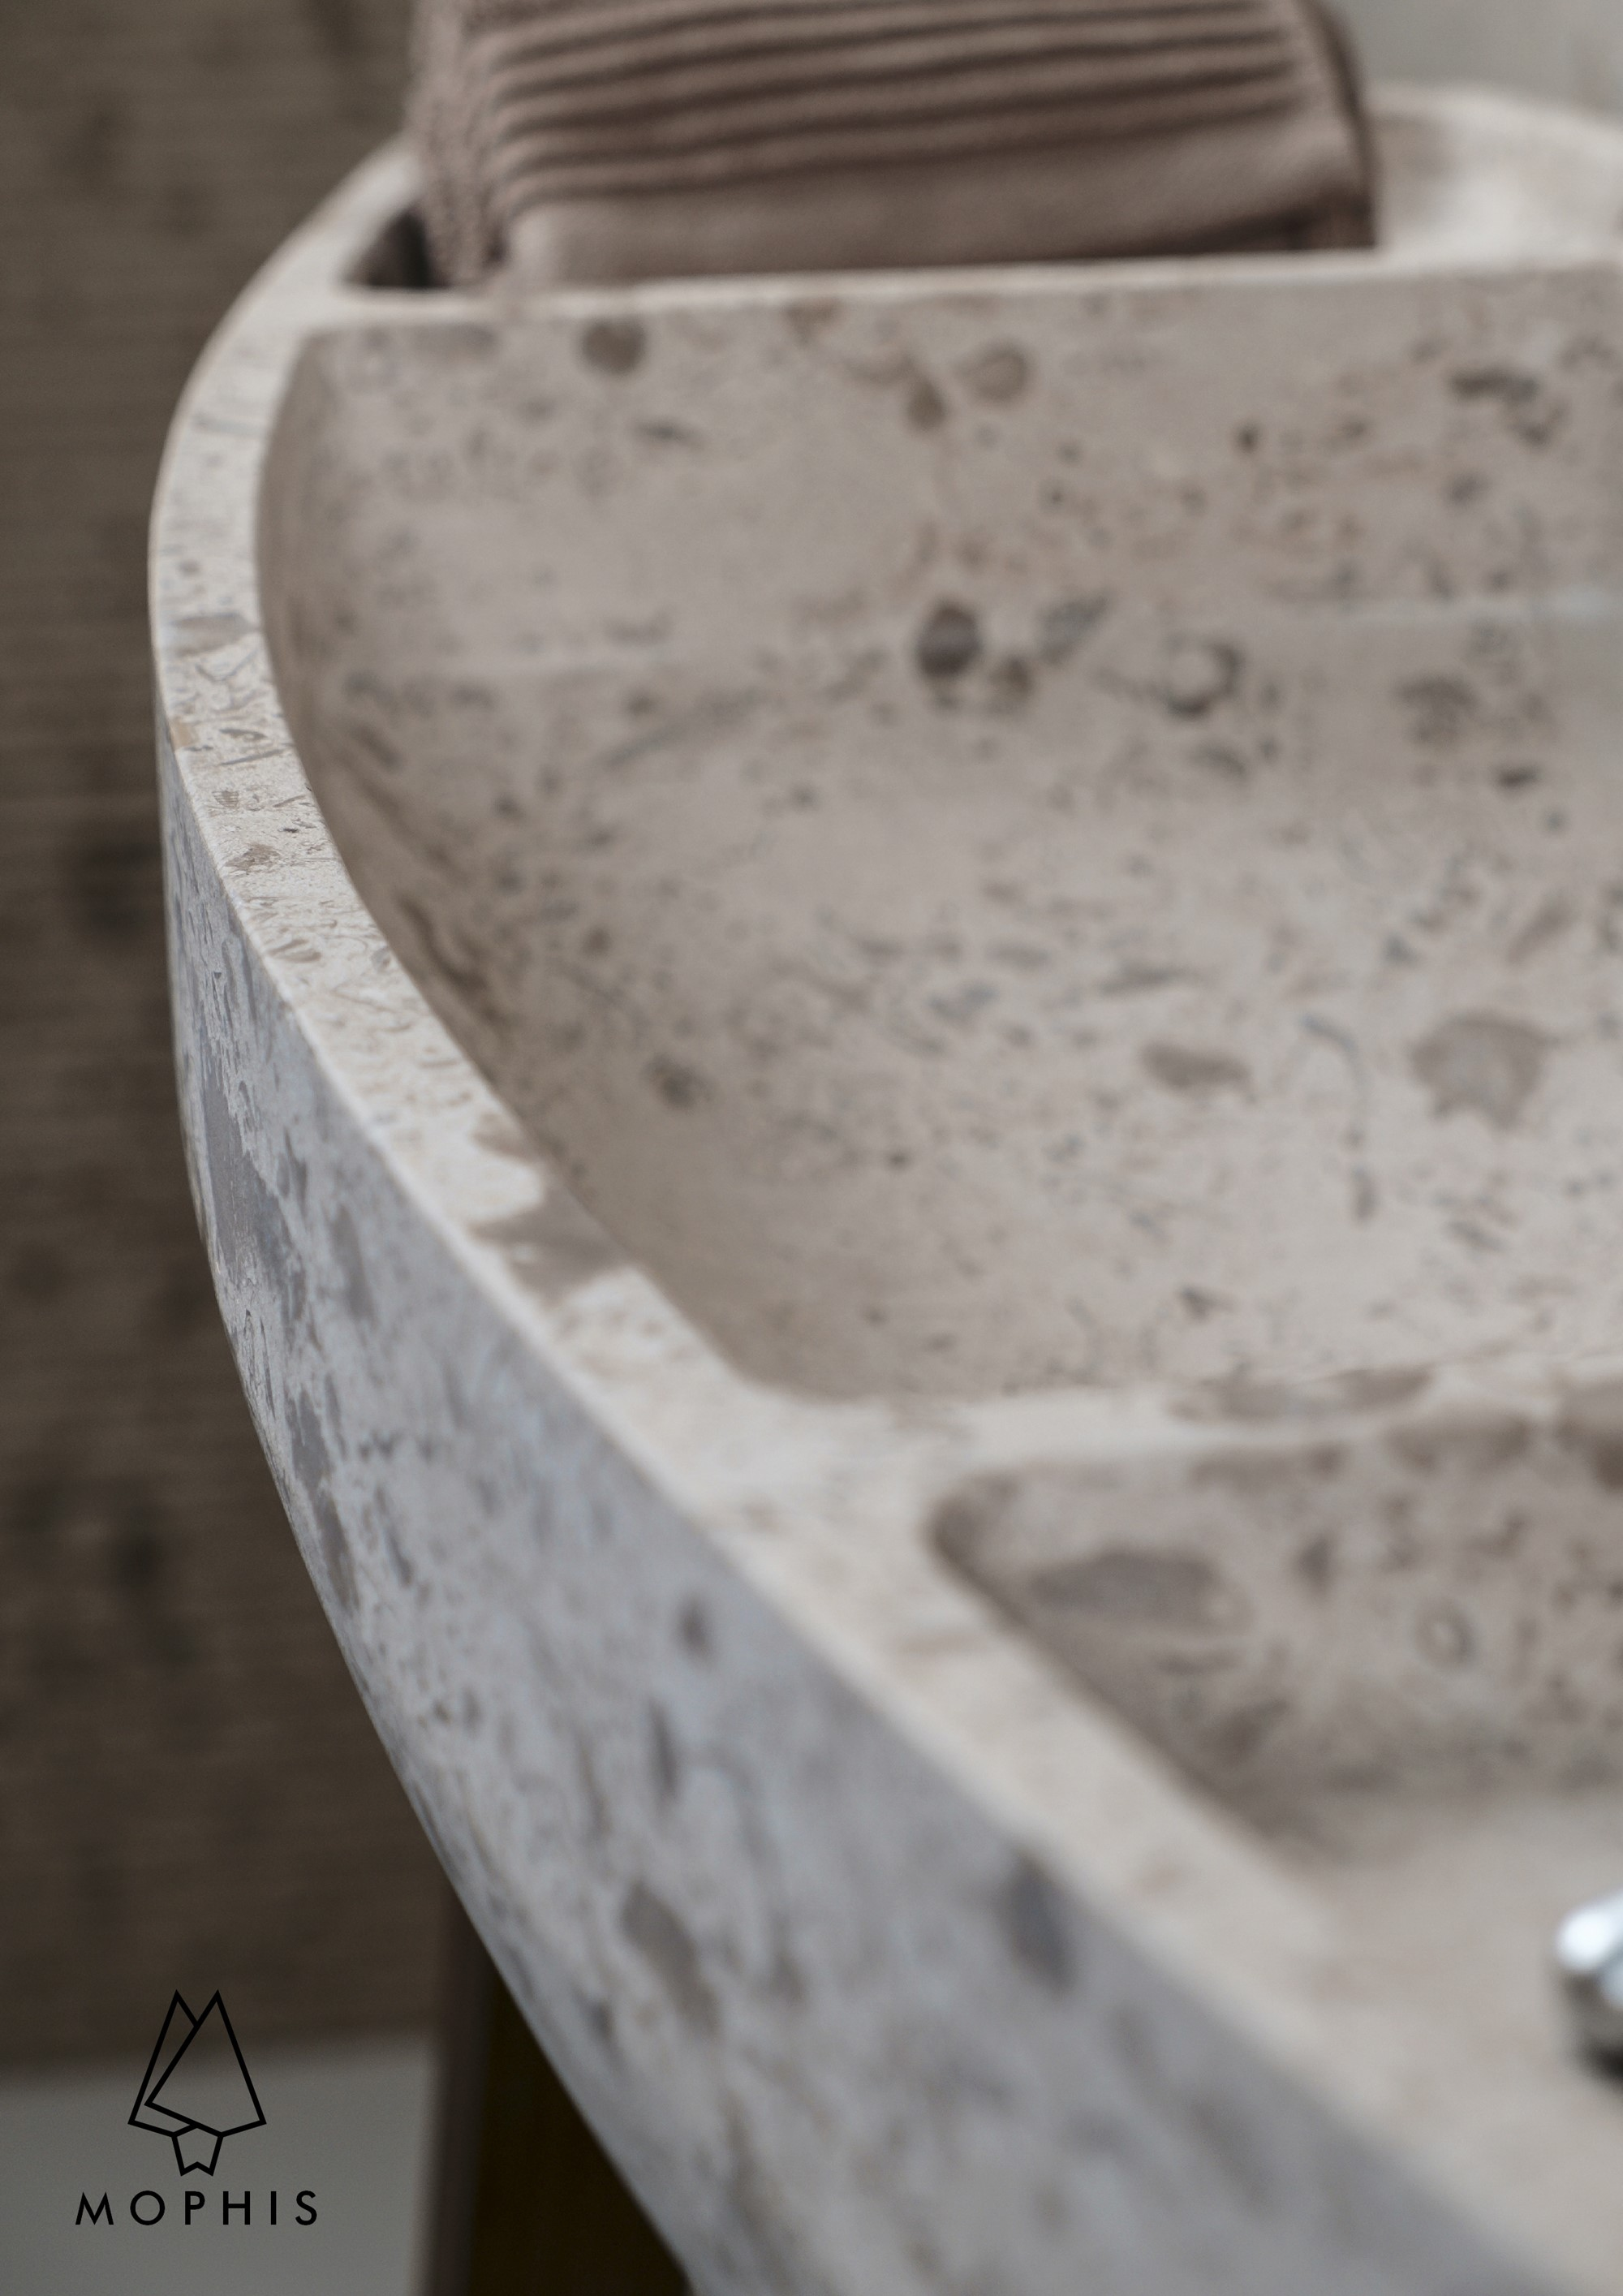 Massive washbasin CNC carved from a single Fossils limestone block